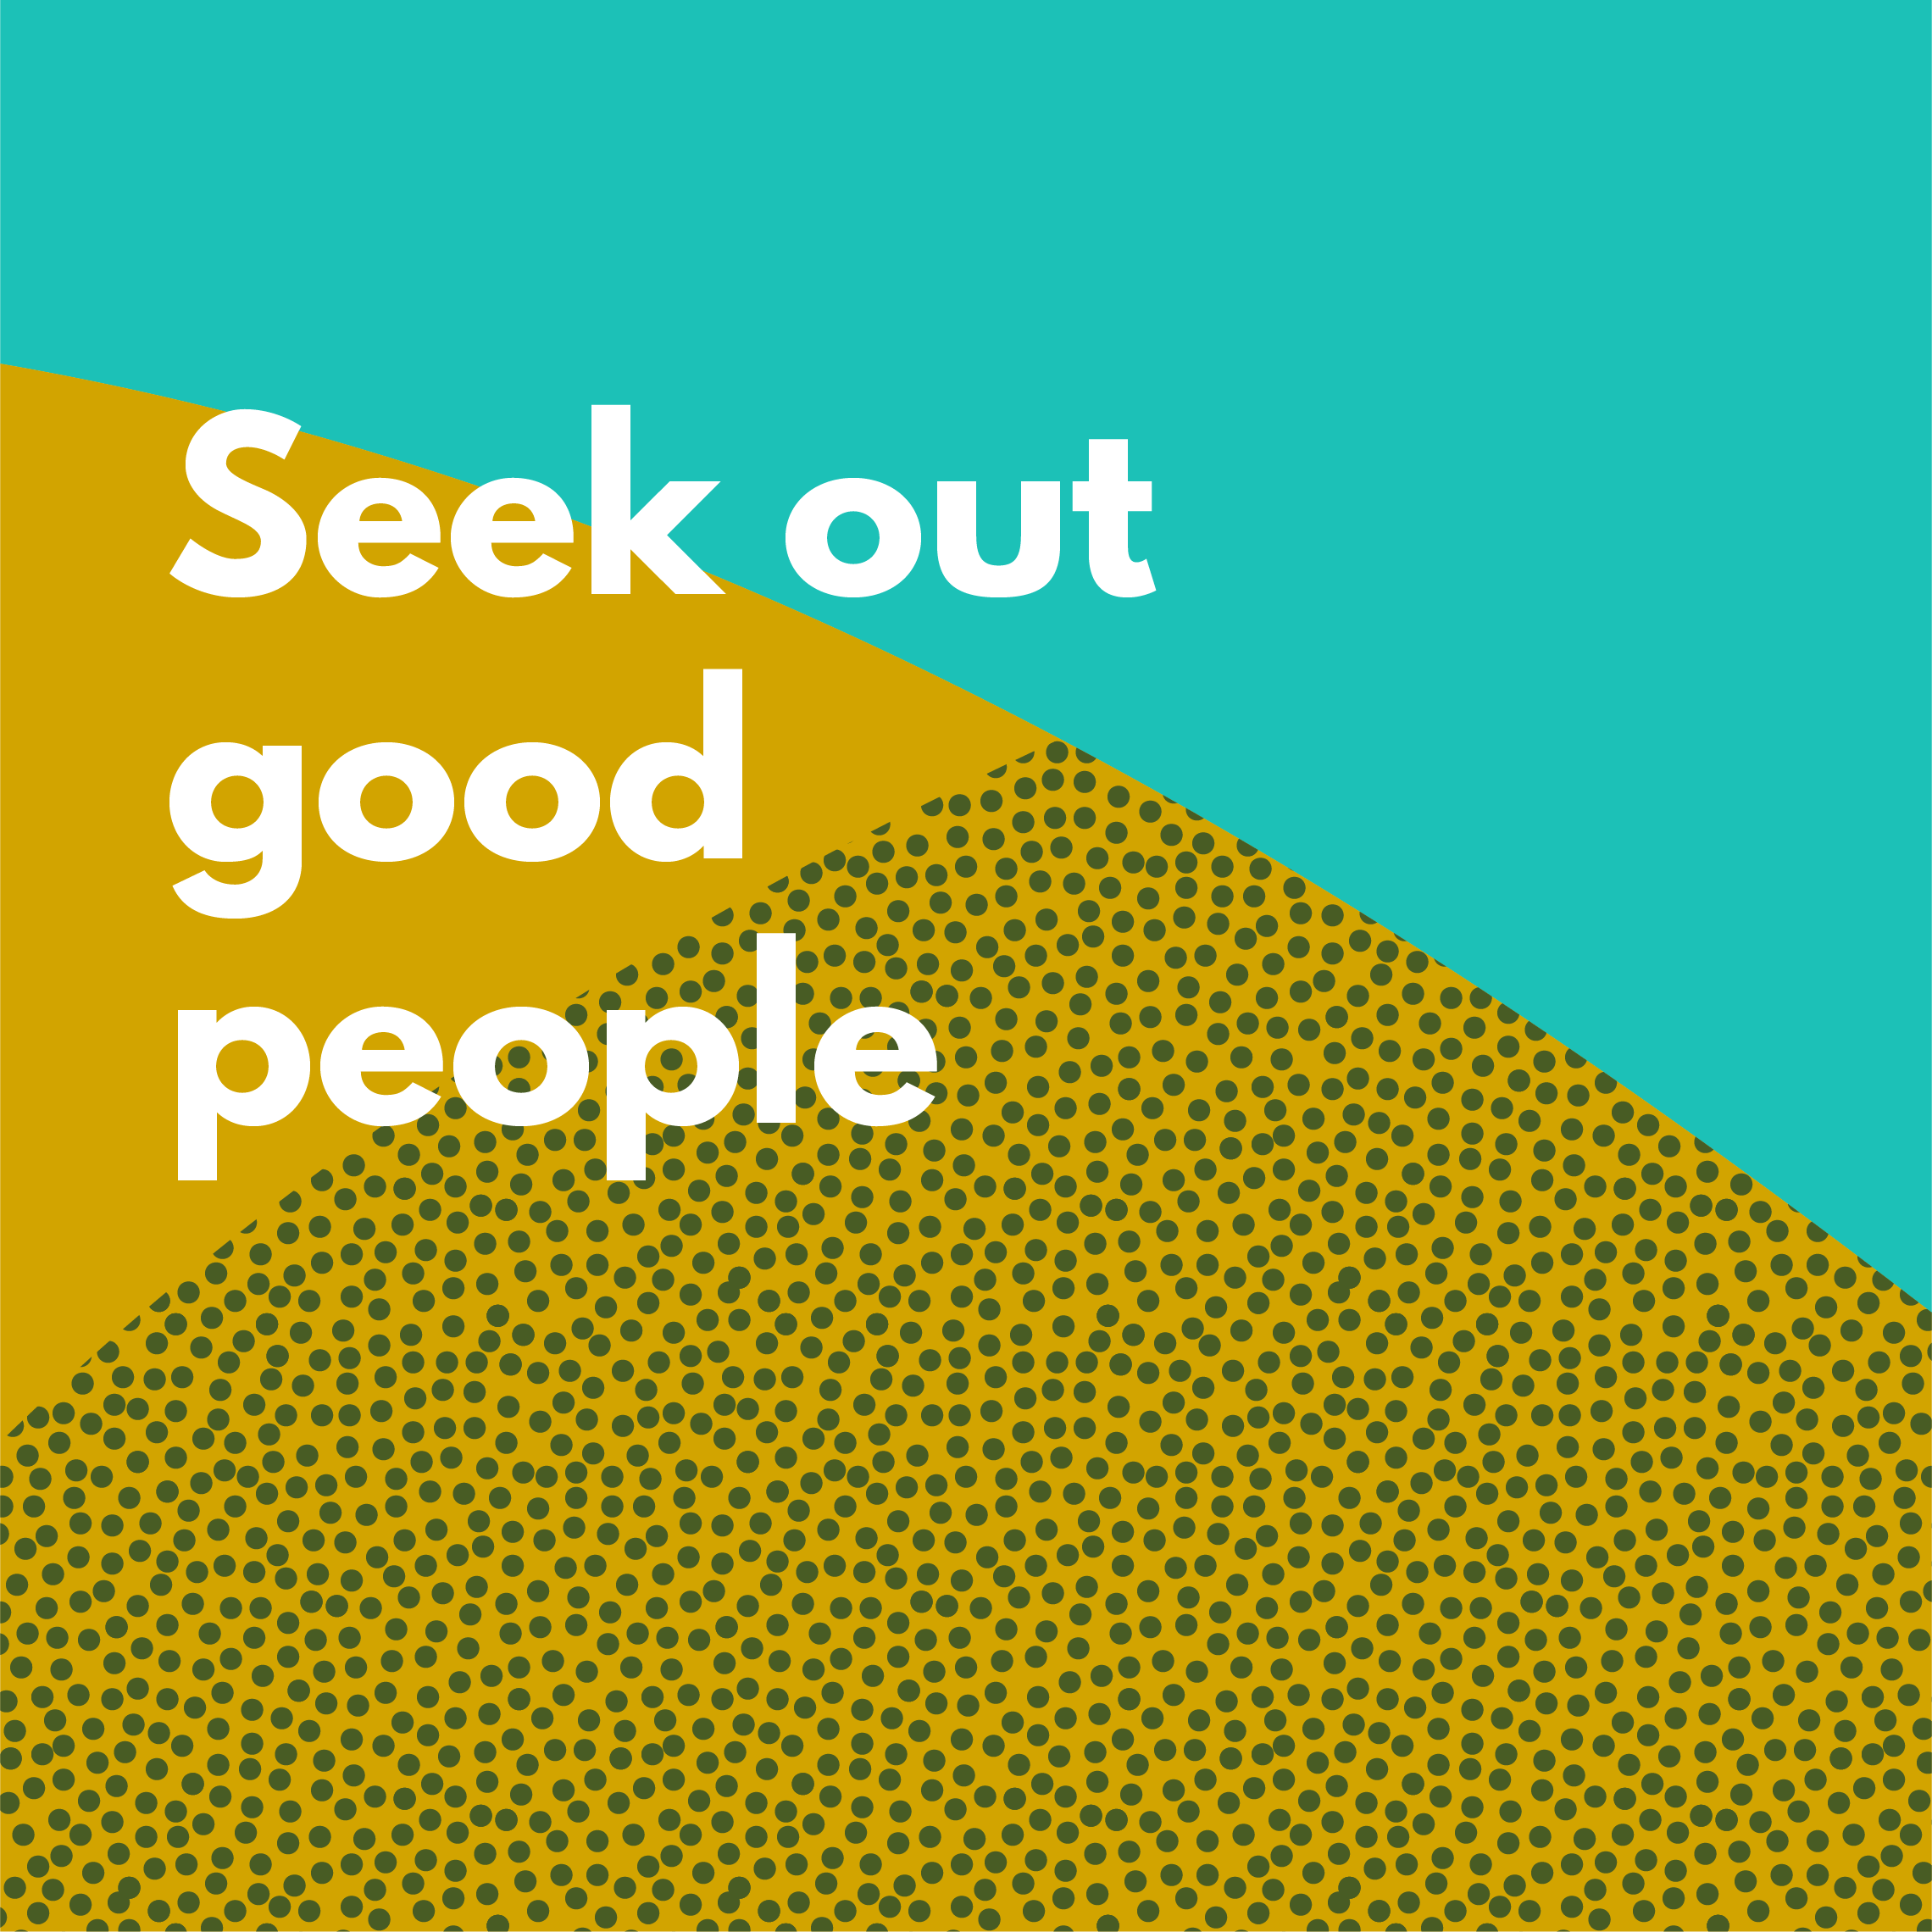 Seek out good people